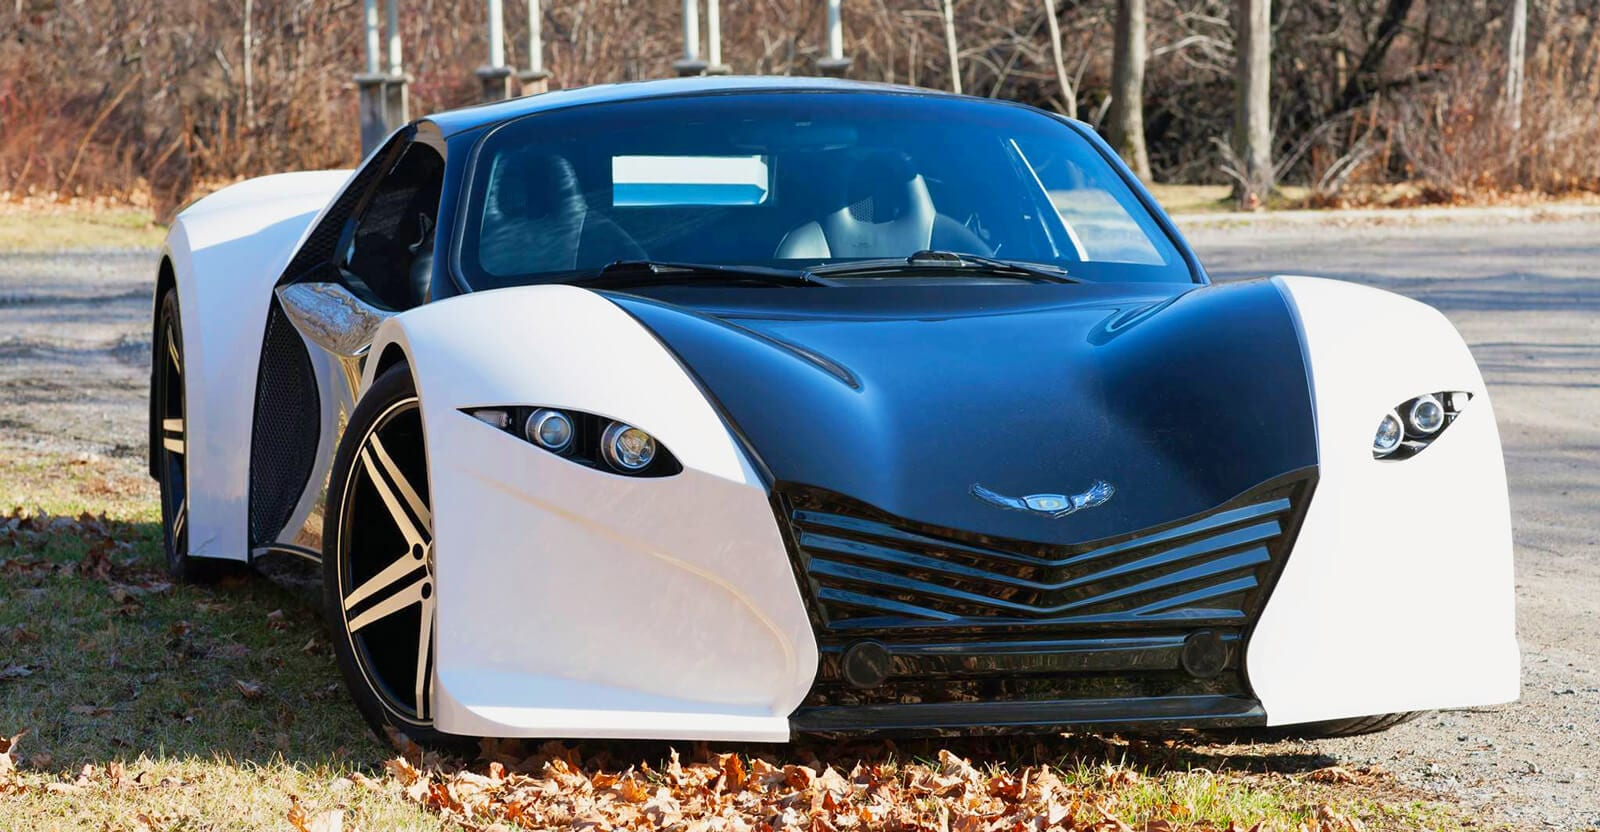 The Tomahawk Will Be World's First Electric 4 Passenger Sports Car